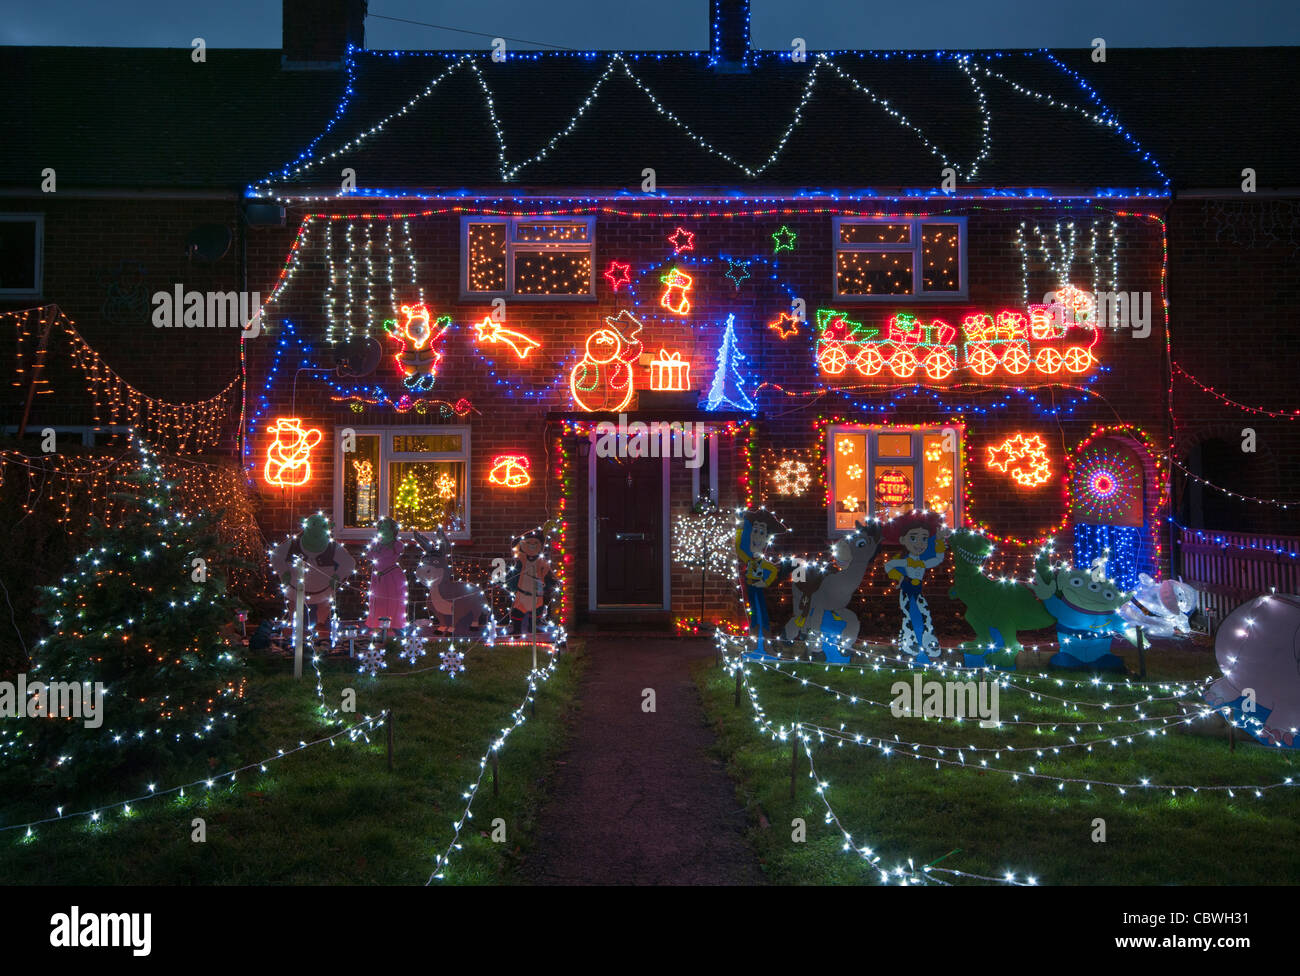 exterior of a house lit up with christmas lights at dusk home property illuminated xmas decorations at night